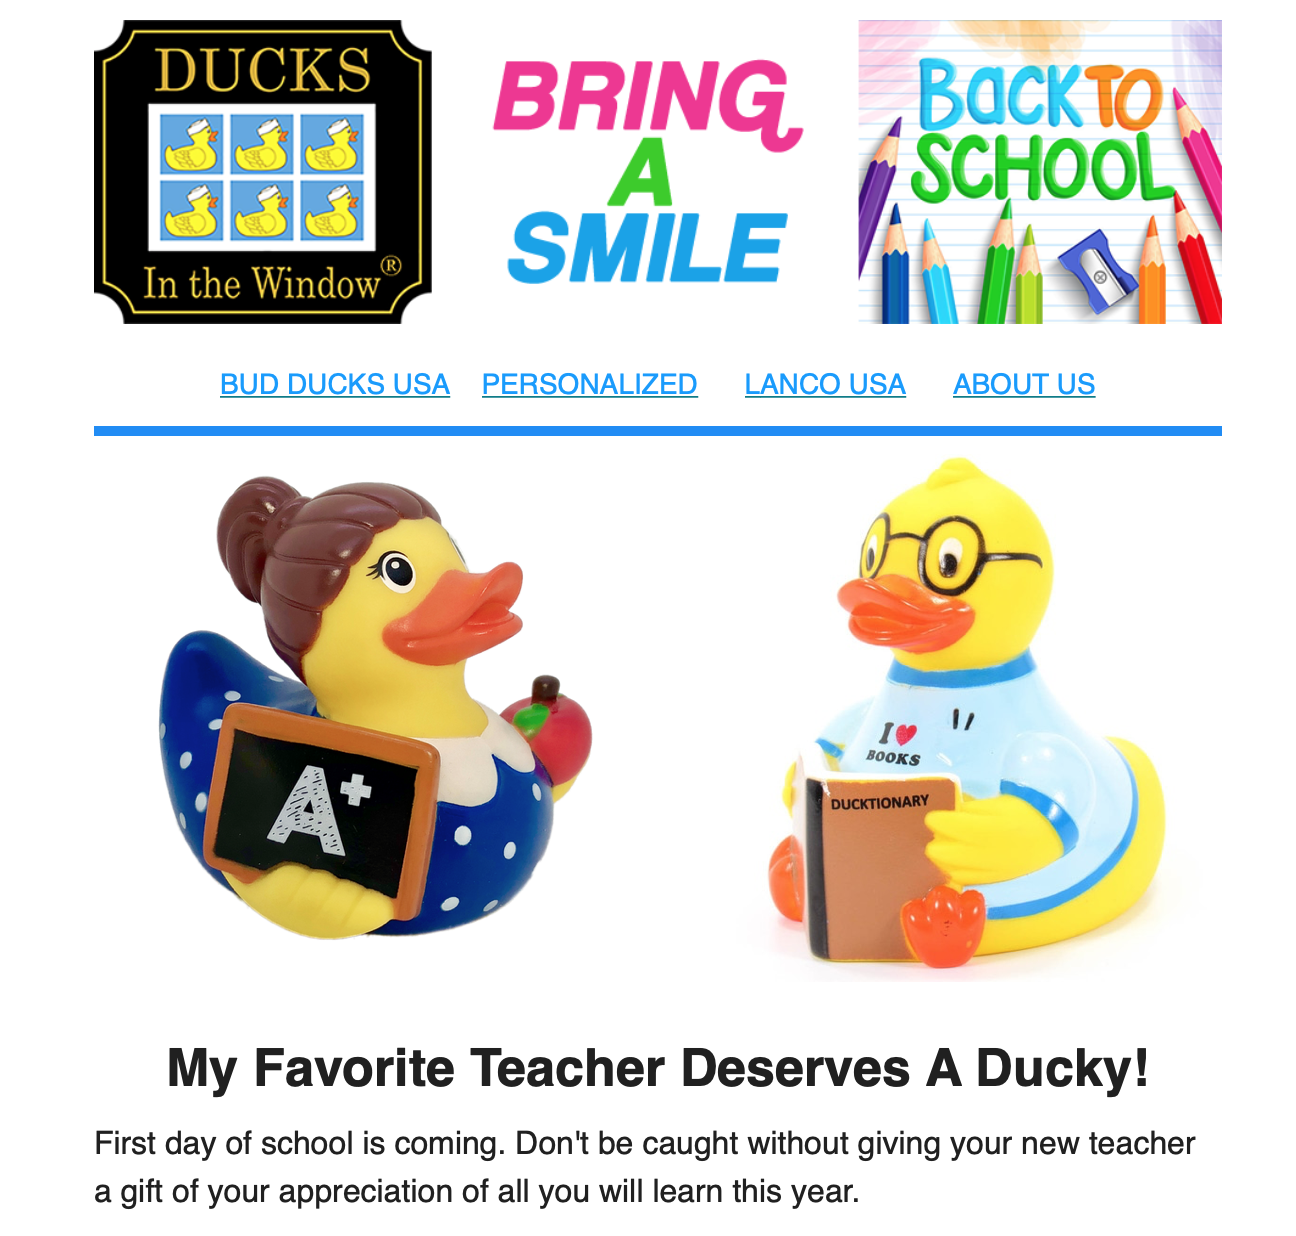 Back To School - Ducks In The Window®